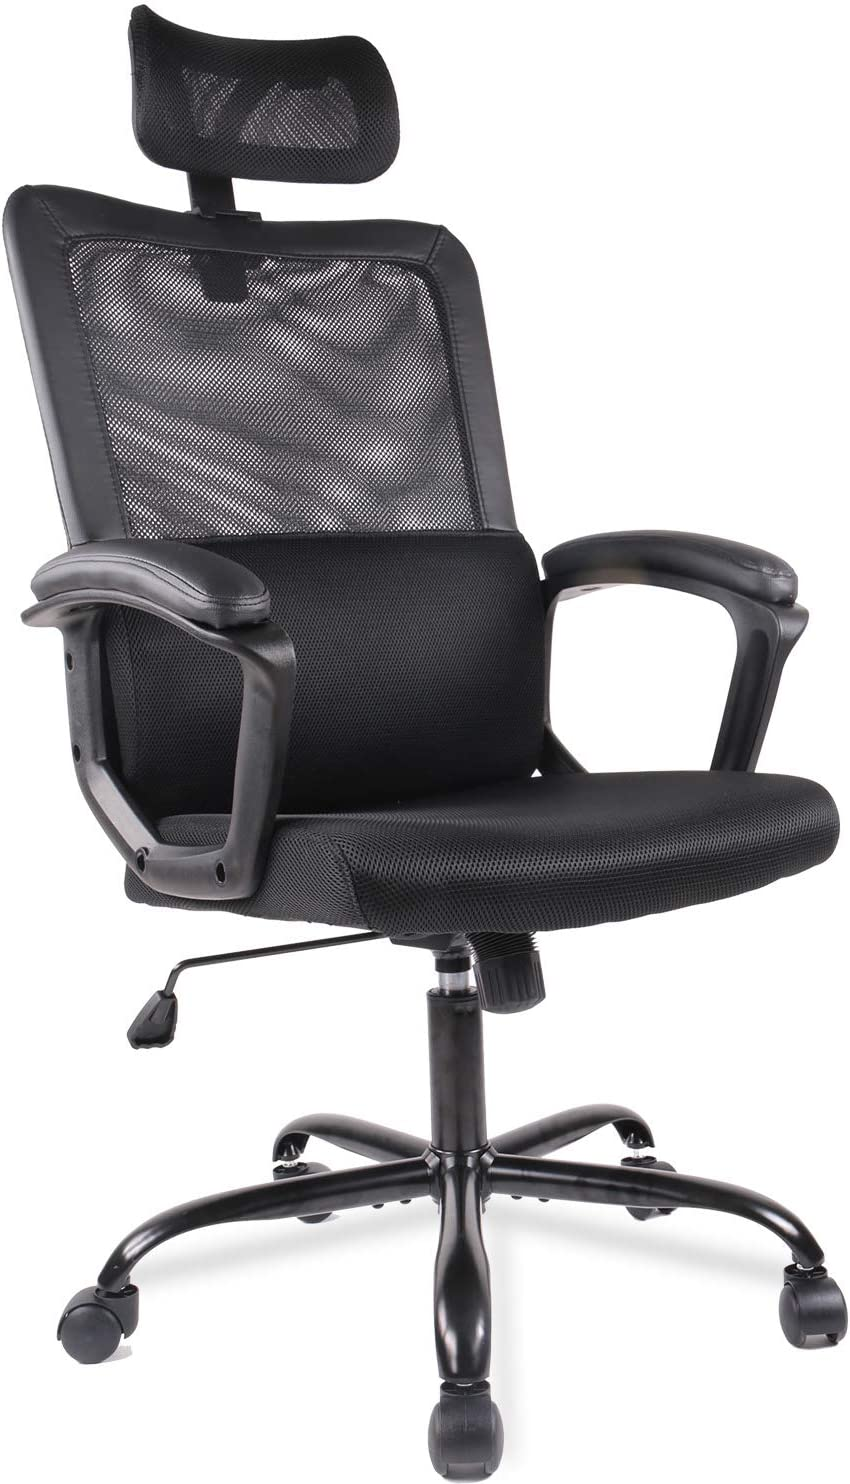 Mesh chair Black Desk Chair Computer Office Chair